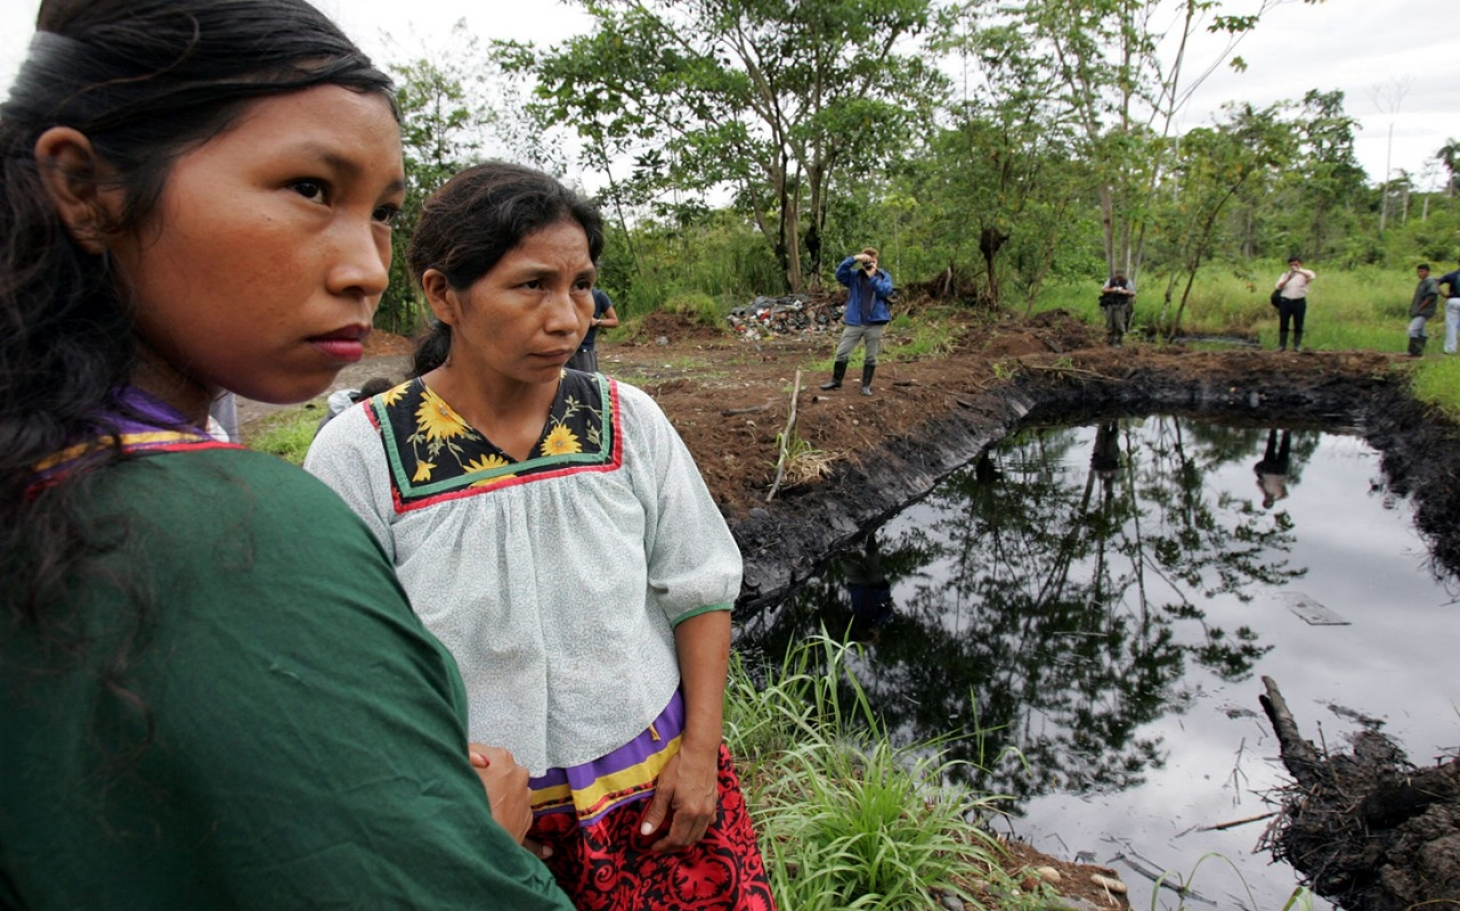 https://i1.wp.com/america.aljazeera.com/content/ajam/articles/2015/9/4/canada-ecuadorians-can-sue-chevron-in-ontario/jcr:content/headlineImage.adapt.1460.high.ecuador_chevron_oil_090415.1441391307985.jpg